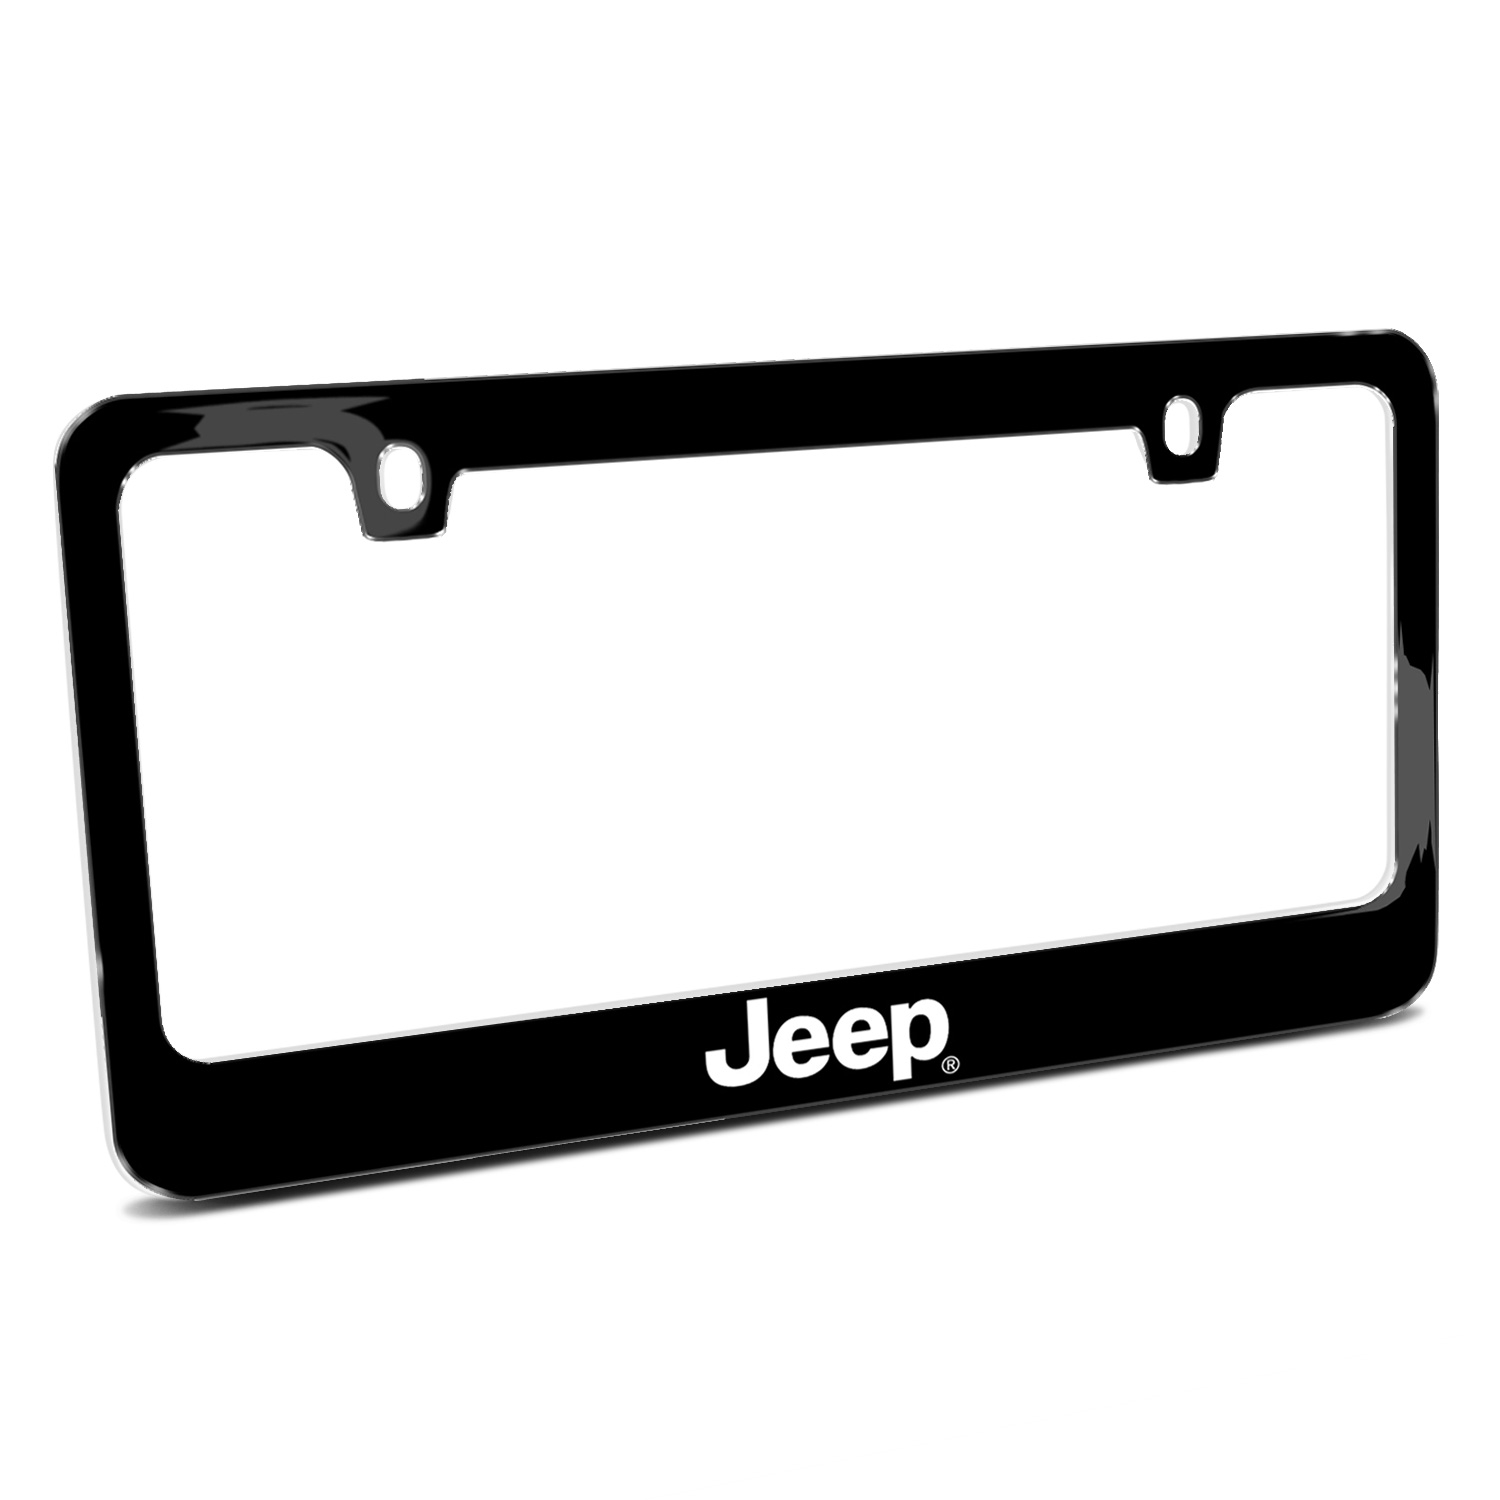 Jeep Black Metal License Plate Frame